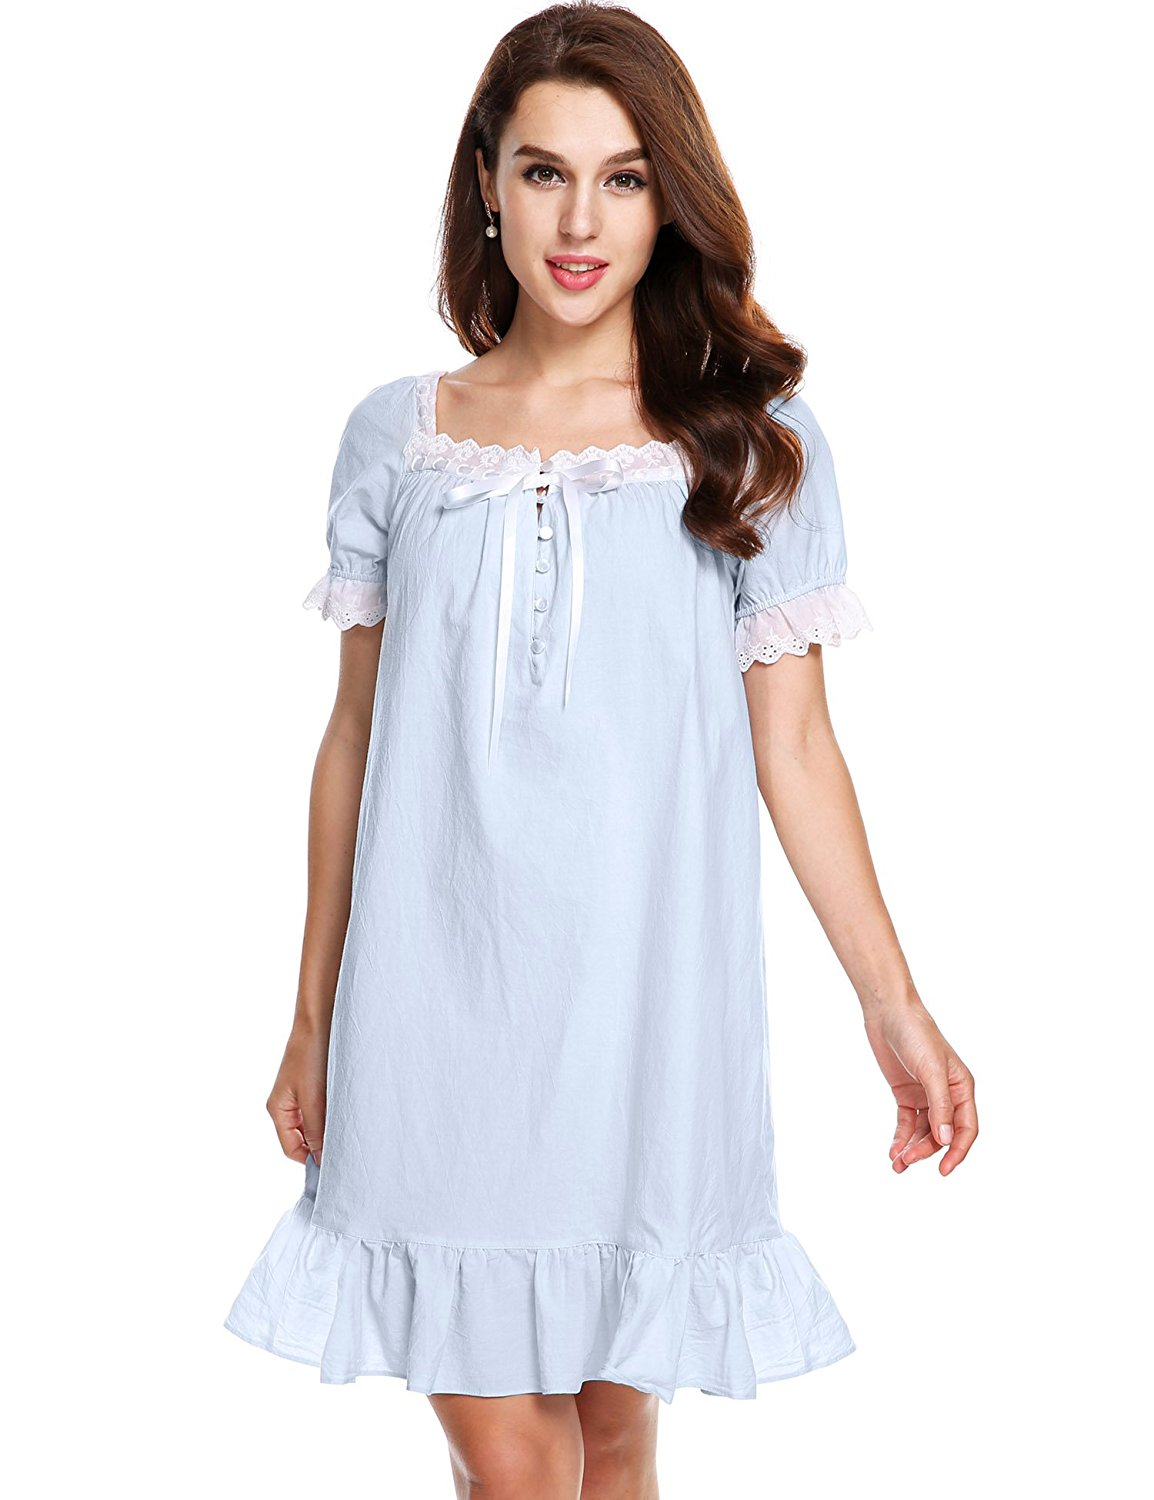 0c84a67d6e Get Quotations · Avidlove Womens Cotton Victorian Vintage Short Sleeve White  Classic Nightgown Sleepwear